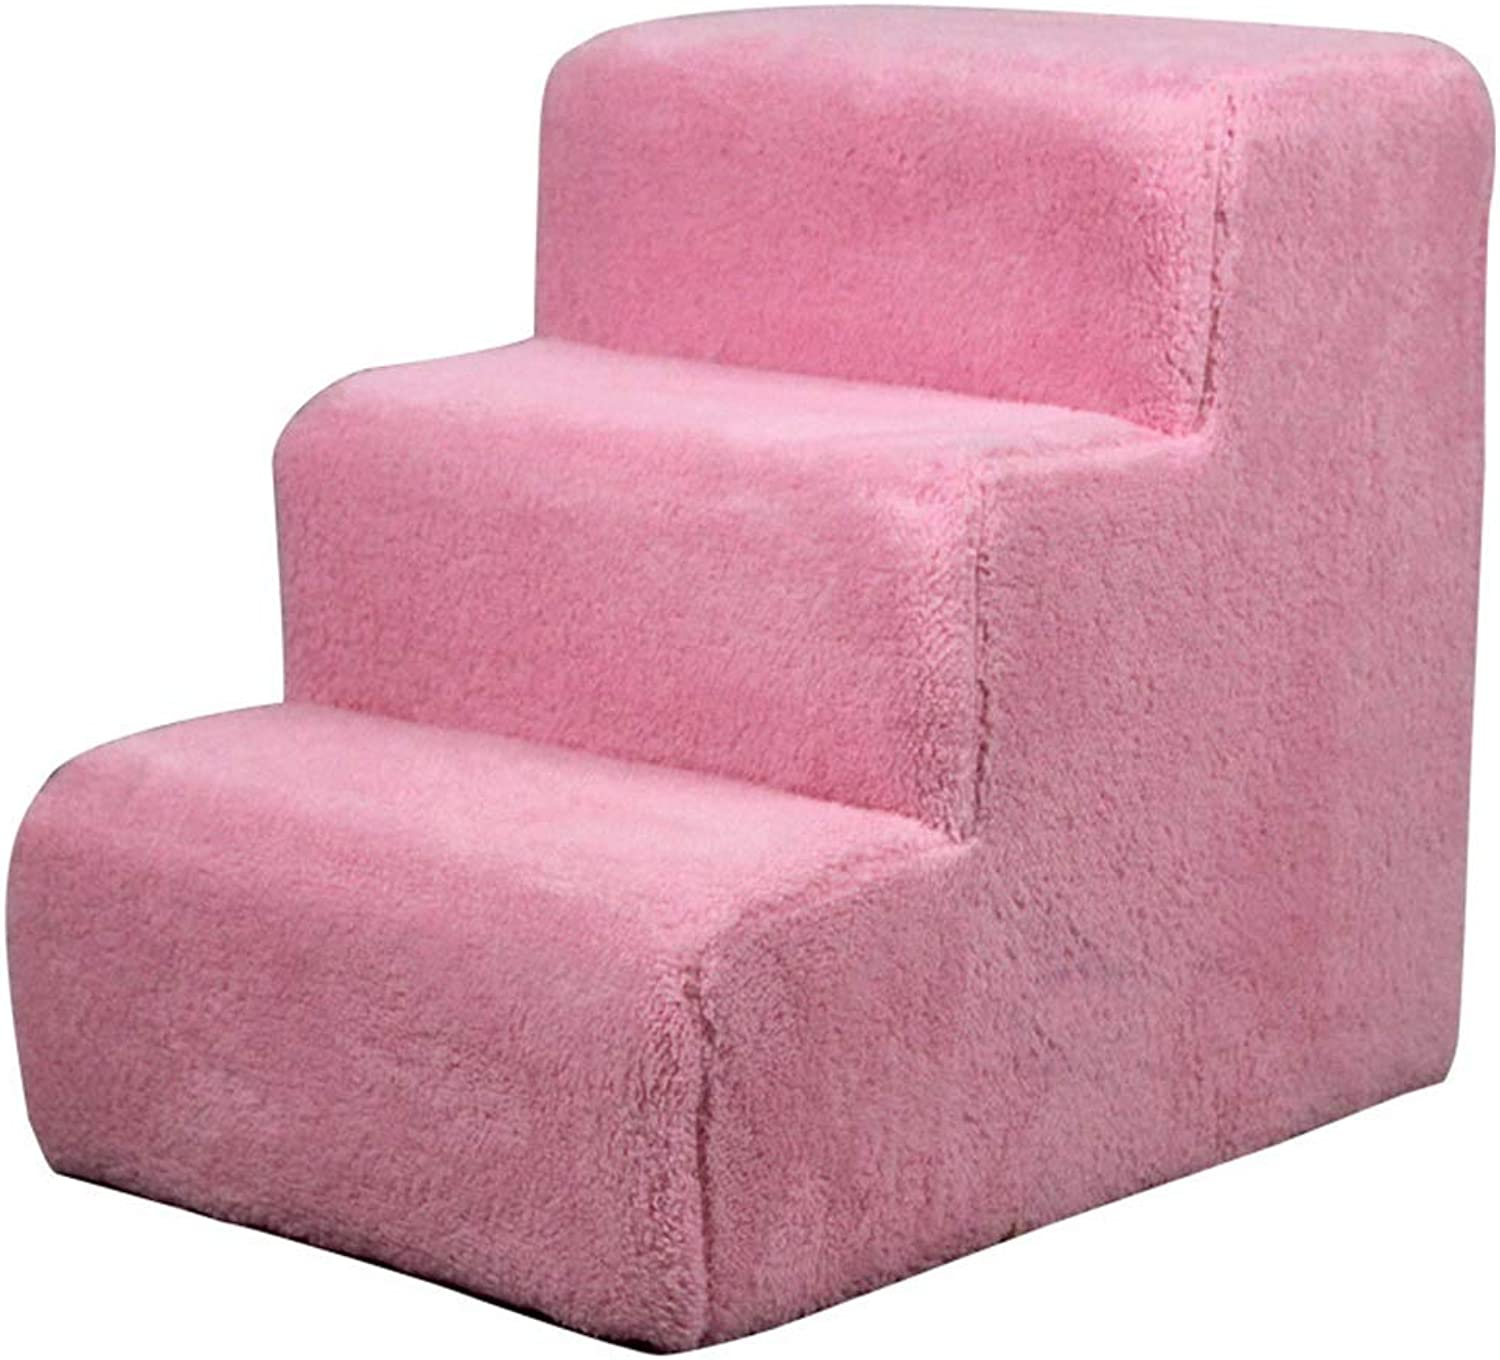 Adjustable 3 Step Dog Stair Washable Cat Dog Climb Green Sponge Stair Puppy Teddy Sofa Bed Ladder (color   Pink)